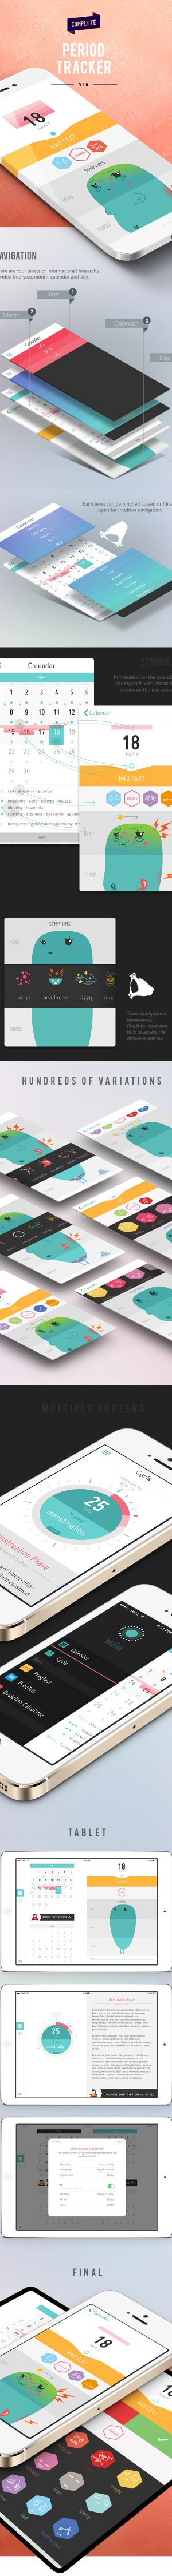 Ineteraction Design, UI/UX | Inspiration DE